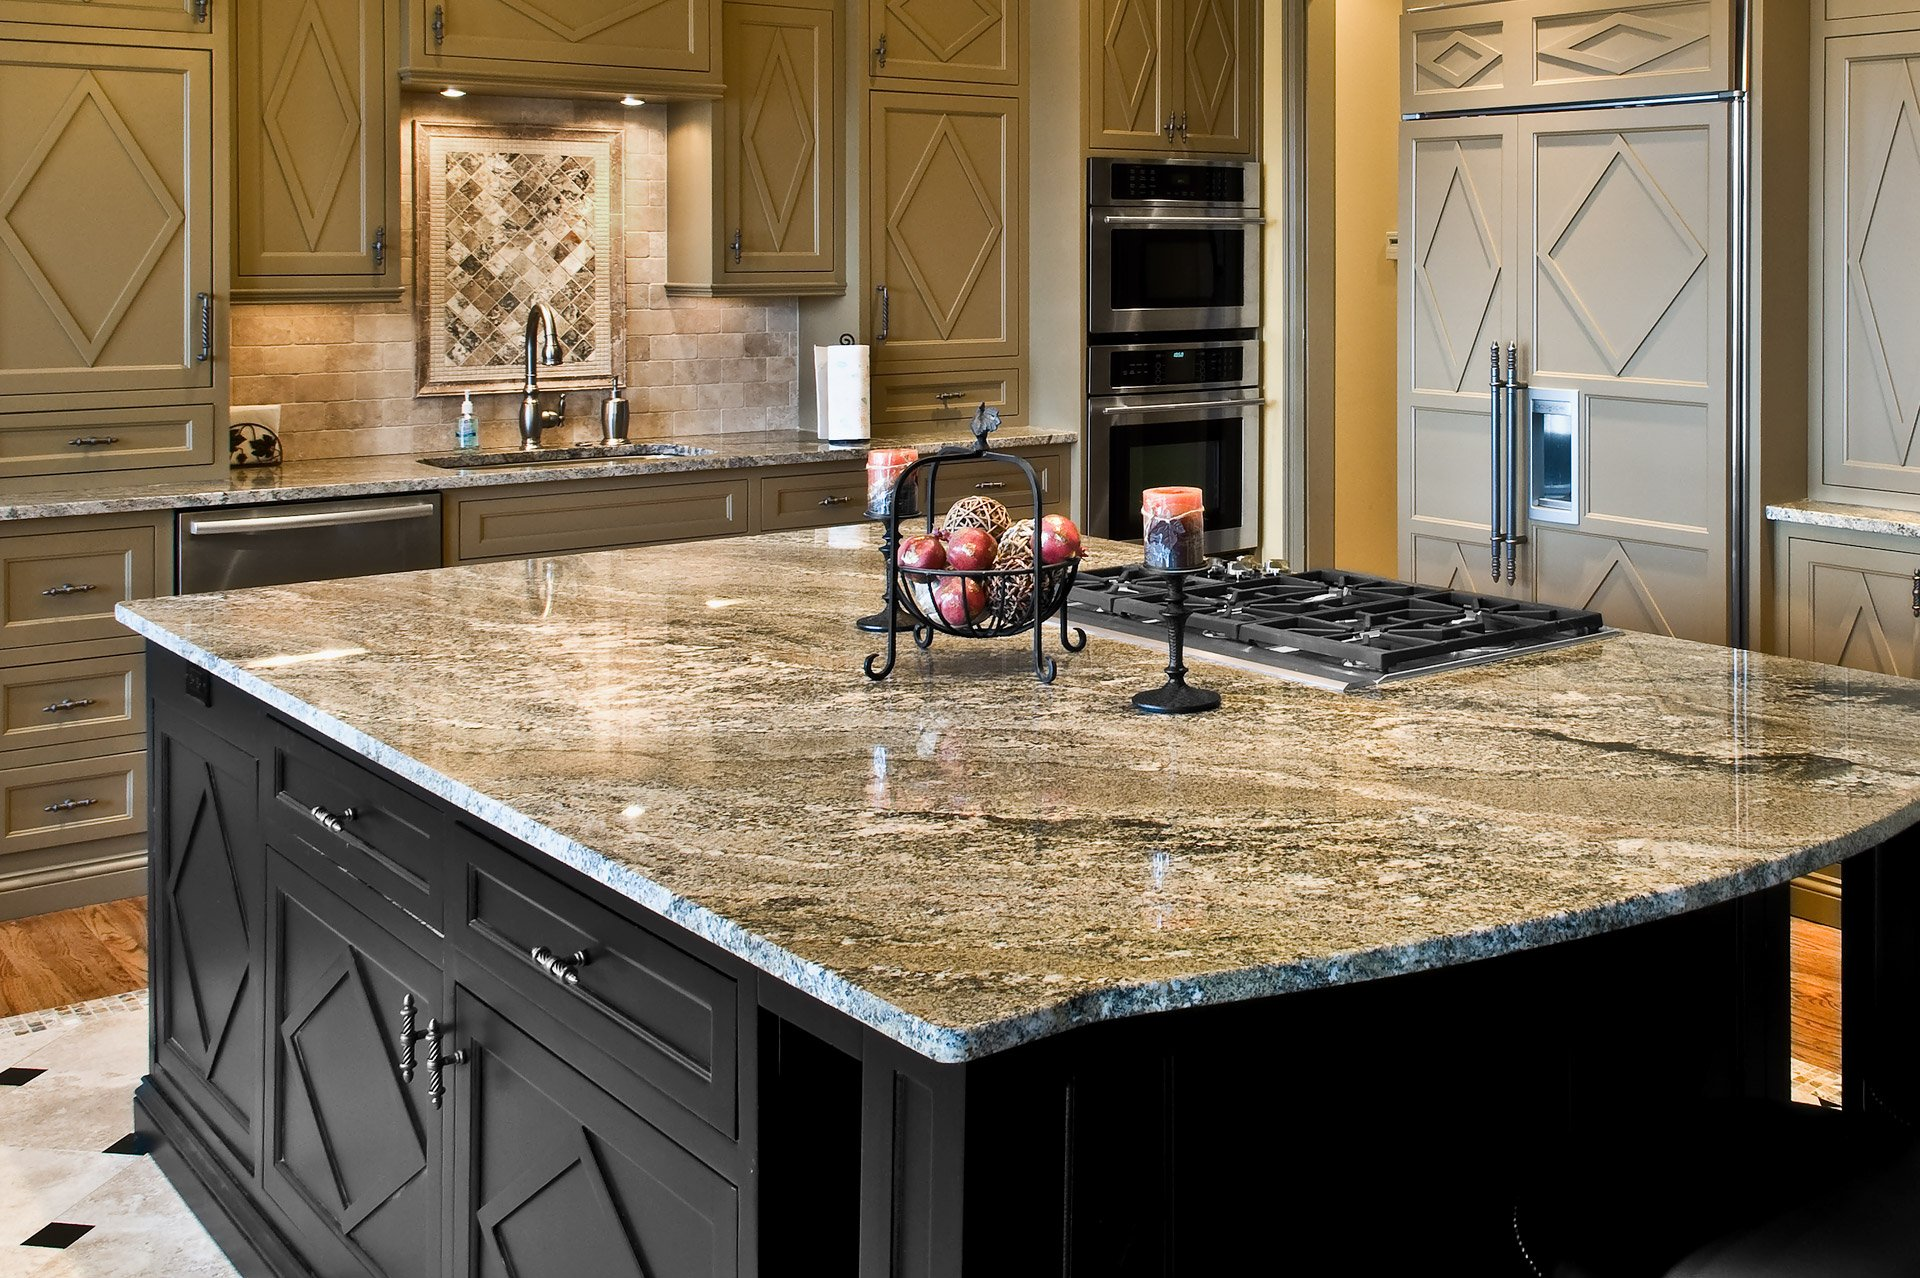 factors-in-selecting-quality-stone-products1.jpg